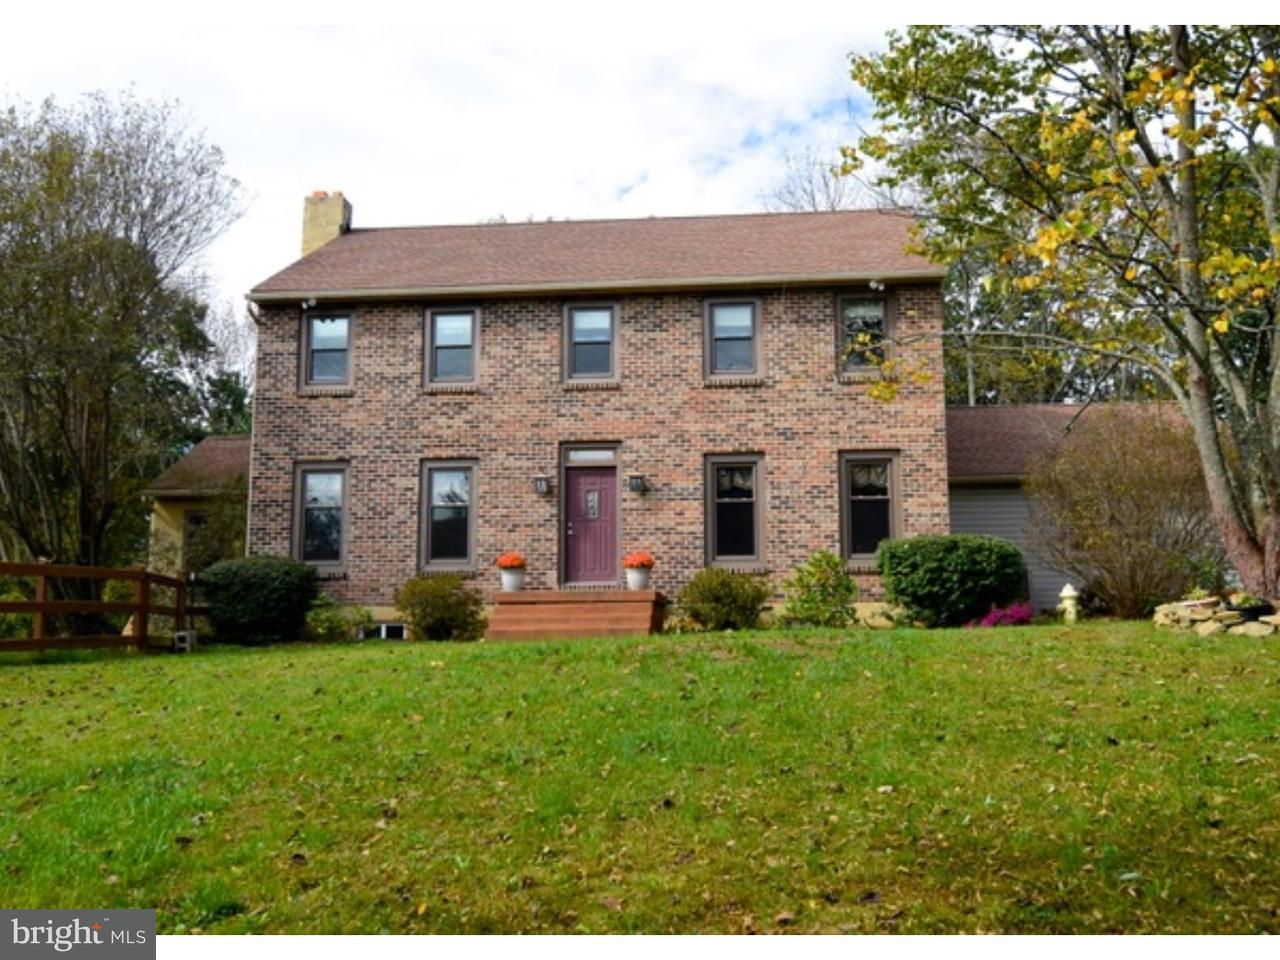 Single Family Home for Sale at 64 MINE Road Oley, Pennsylvania 19547 United States